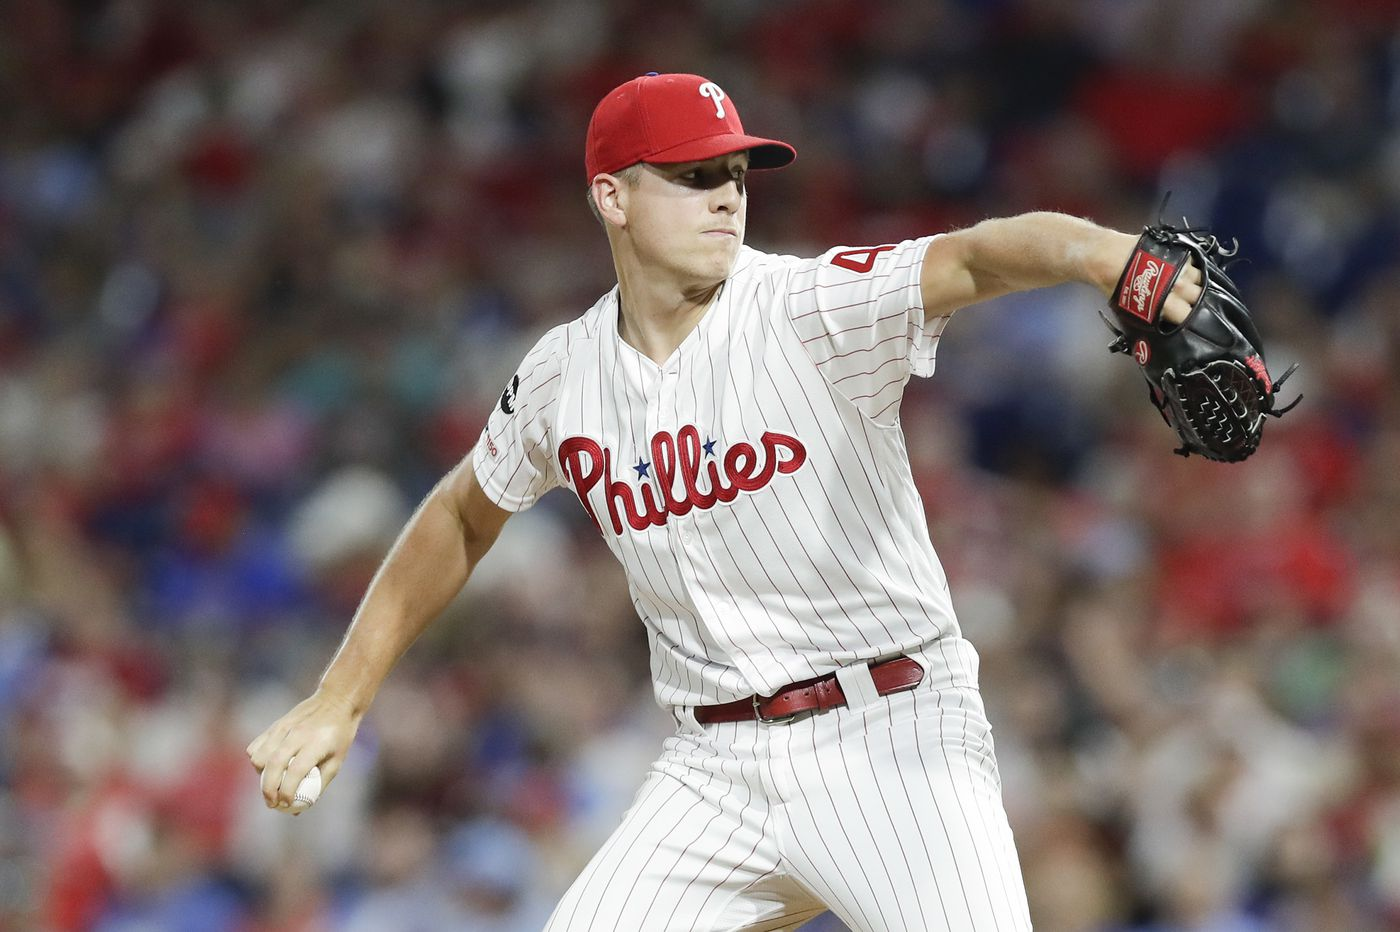 Phillies' playoff hopes fade as Nick Pivetta's 'rocky' season continues | Extra Innings